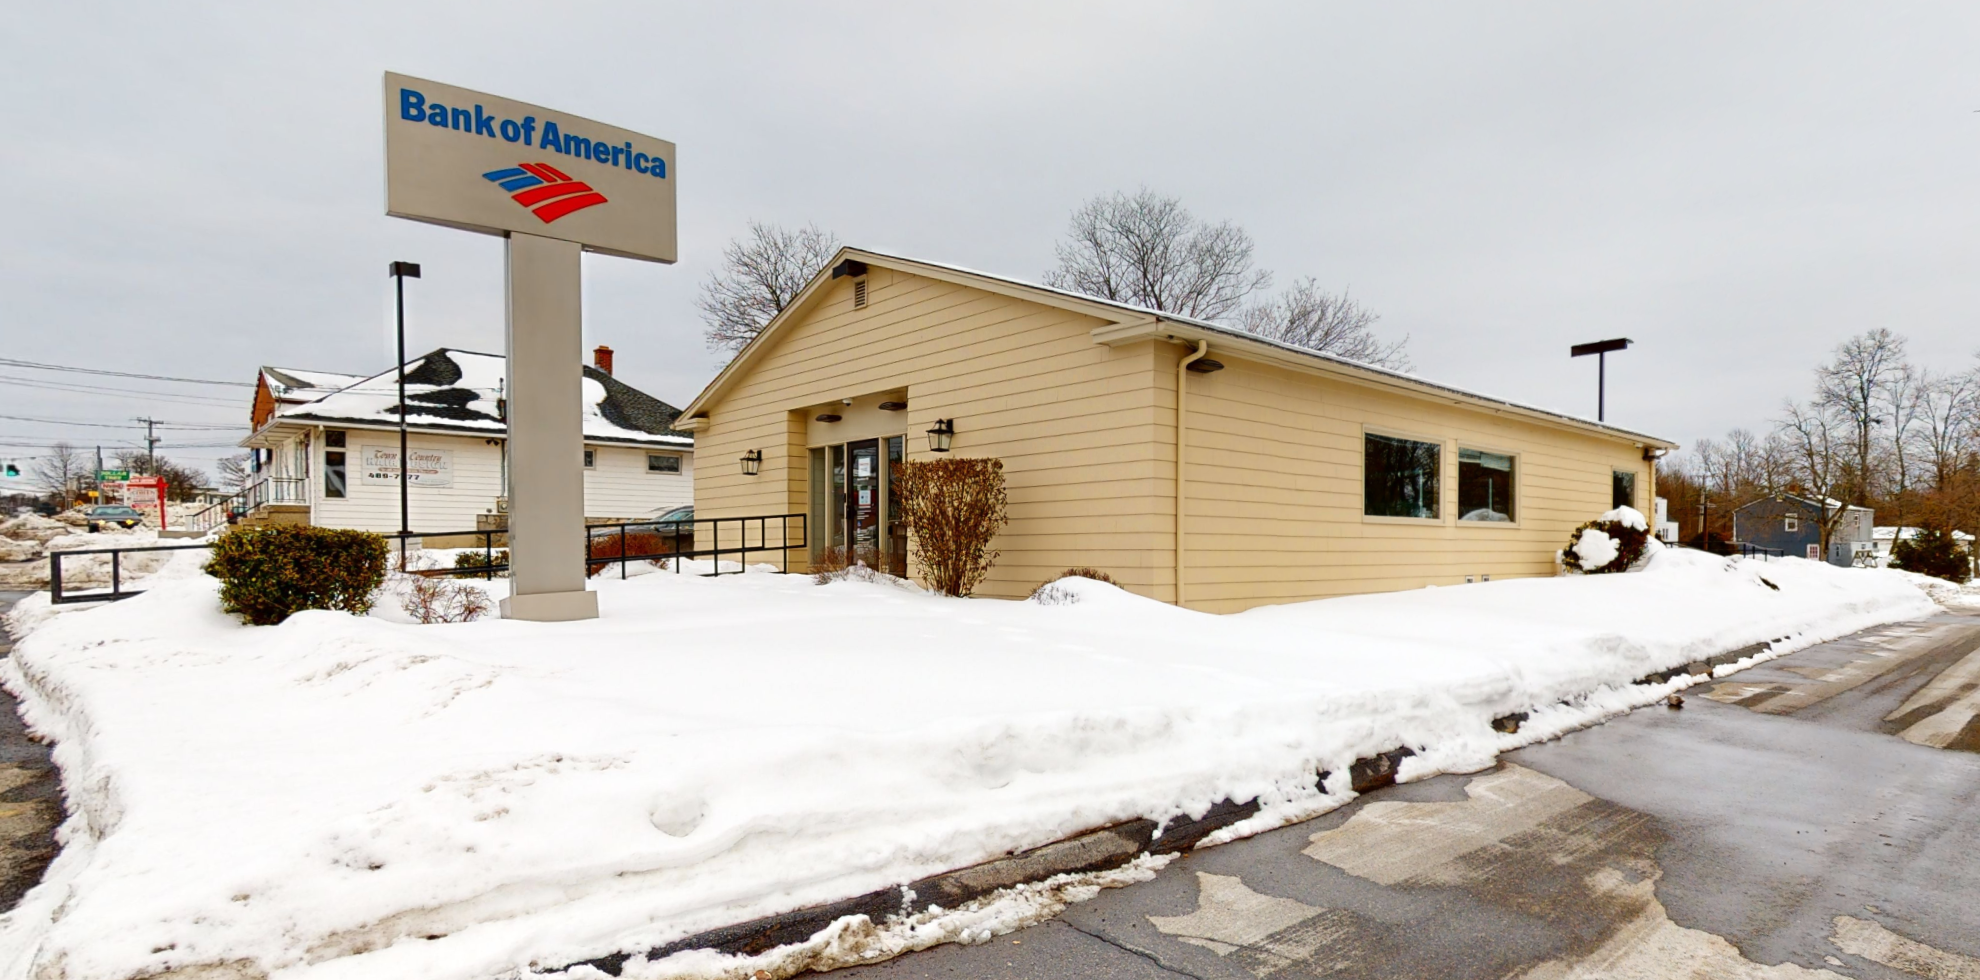 Bank of America financial center with drive-thru ATM and teller | 1196 E Main St, Torrington, CT 06790